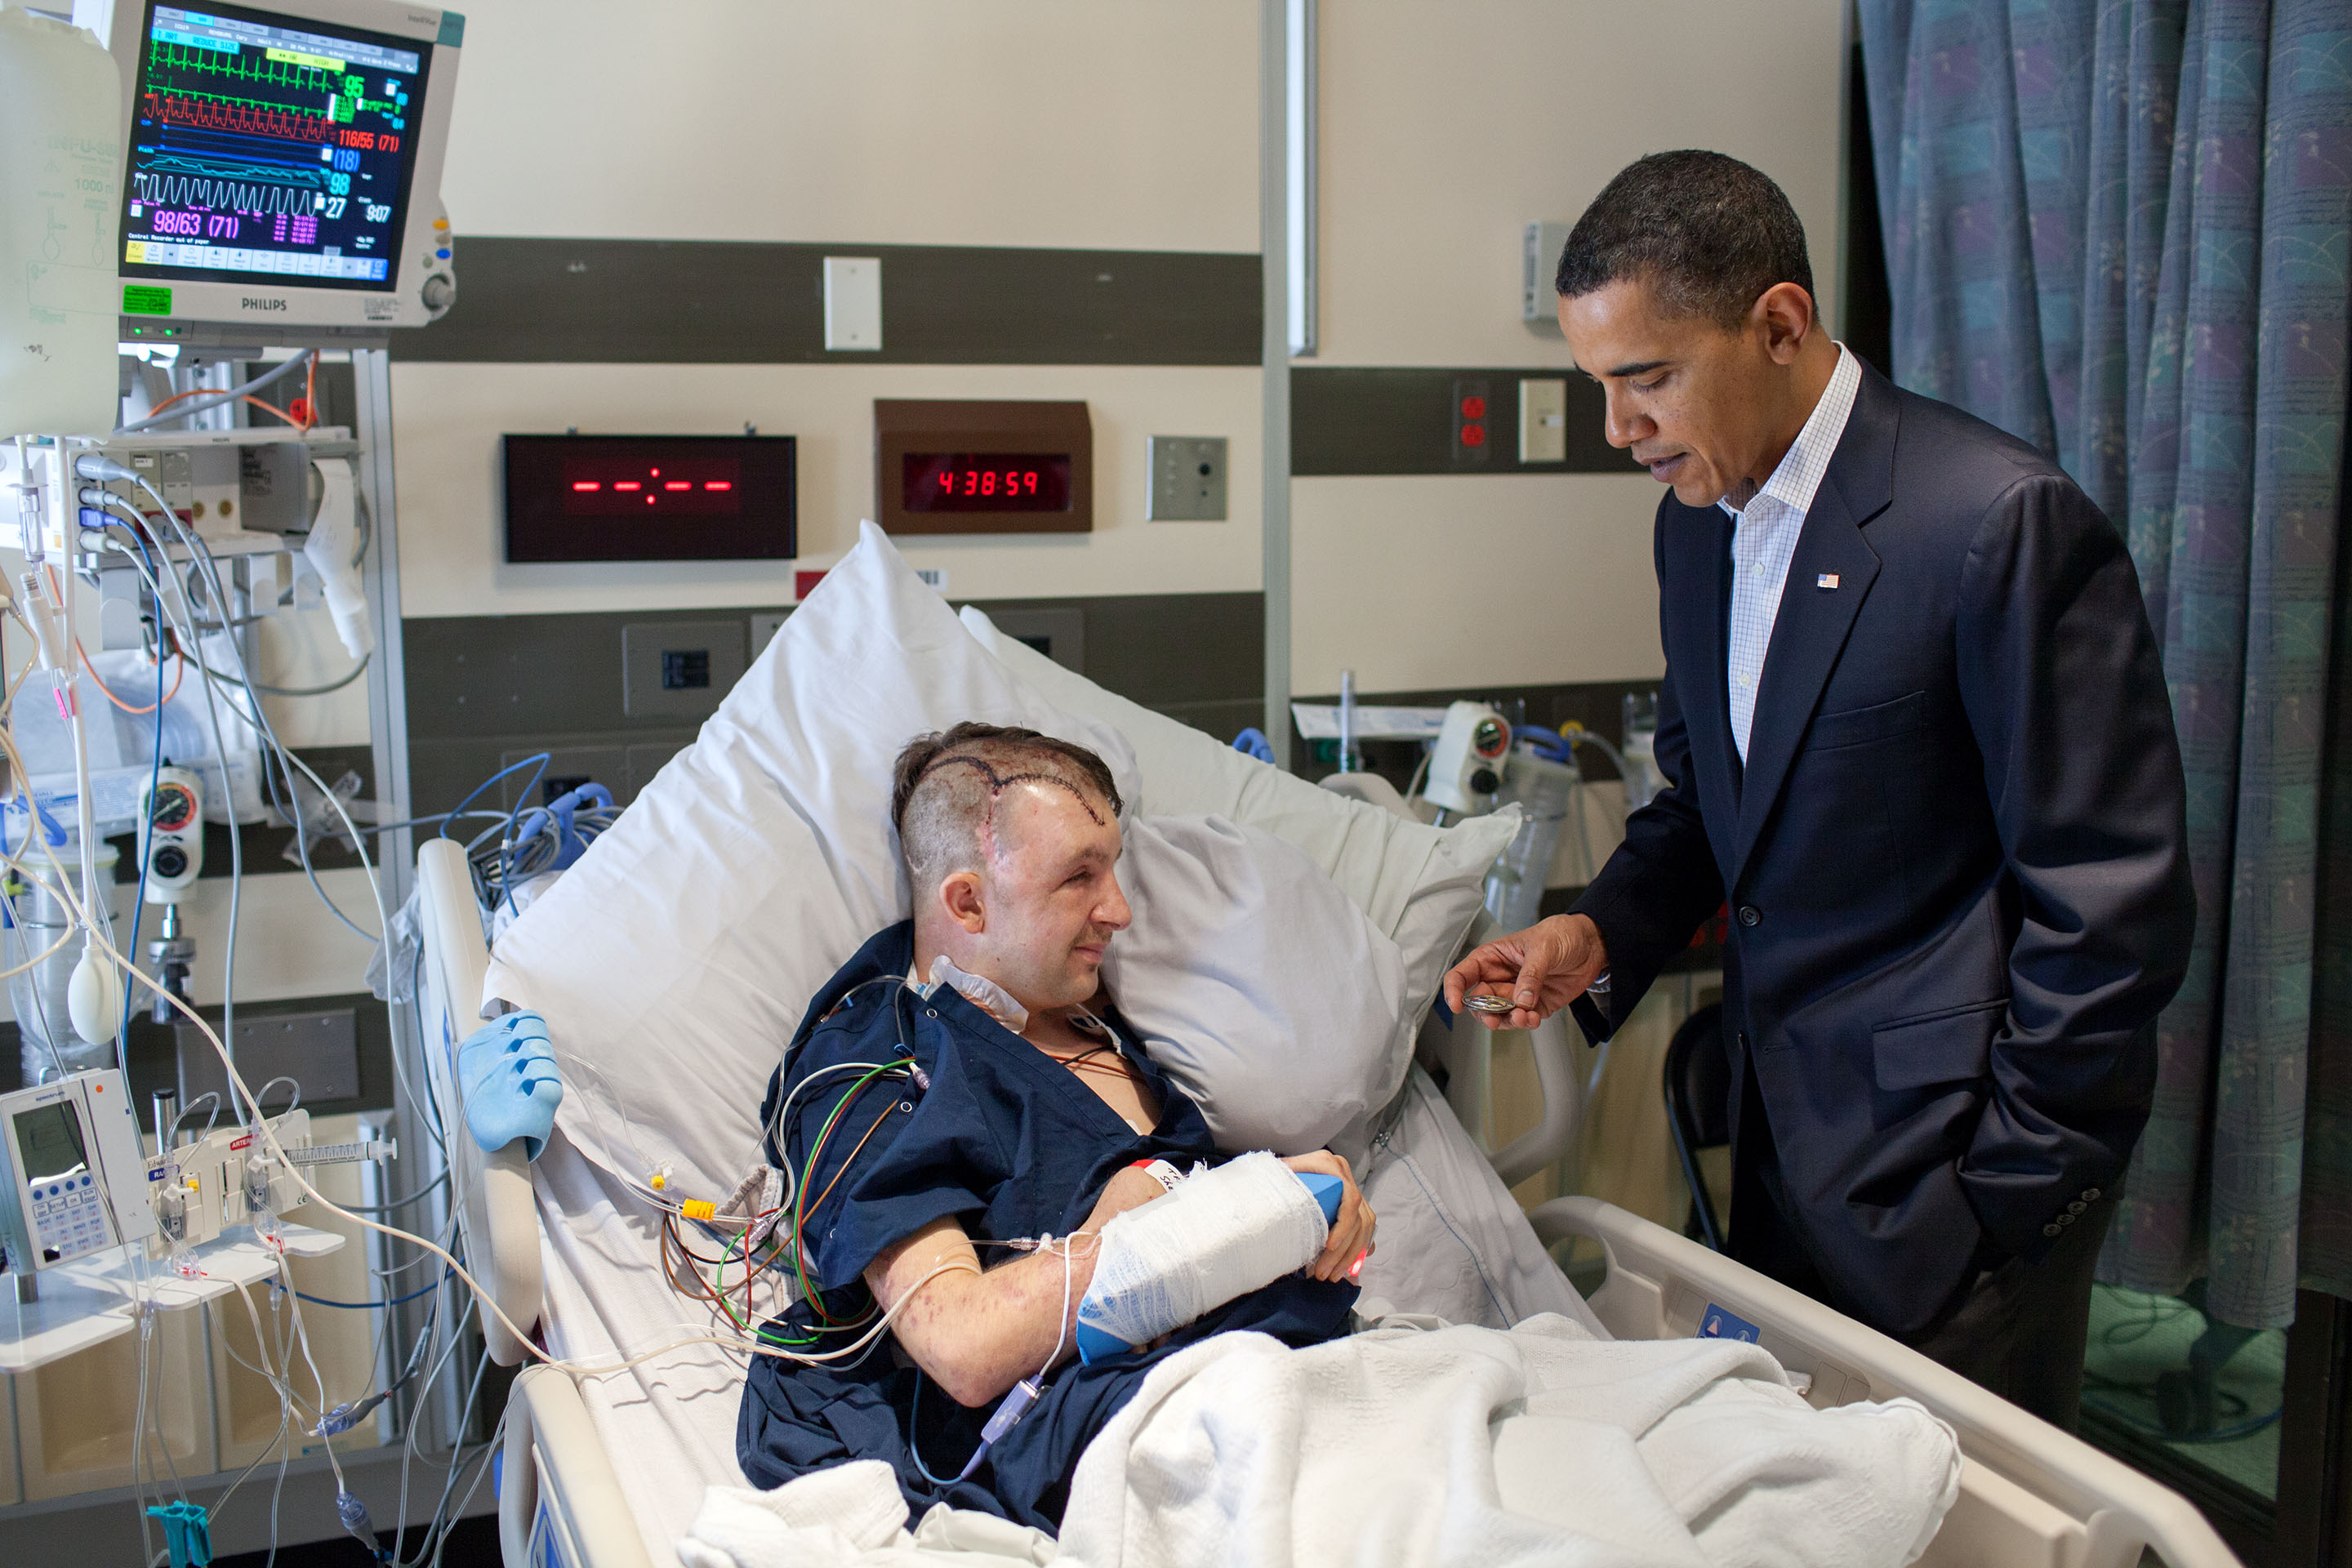 Feb. 28, 2010: President Obama visits Cory Remsburg at the National Naval Medical Center in Bethesda, Md. (Official White House Photo by Pete Souza)